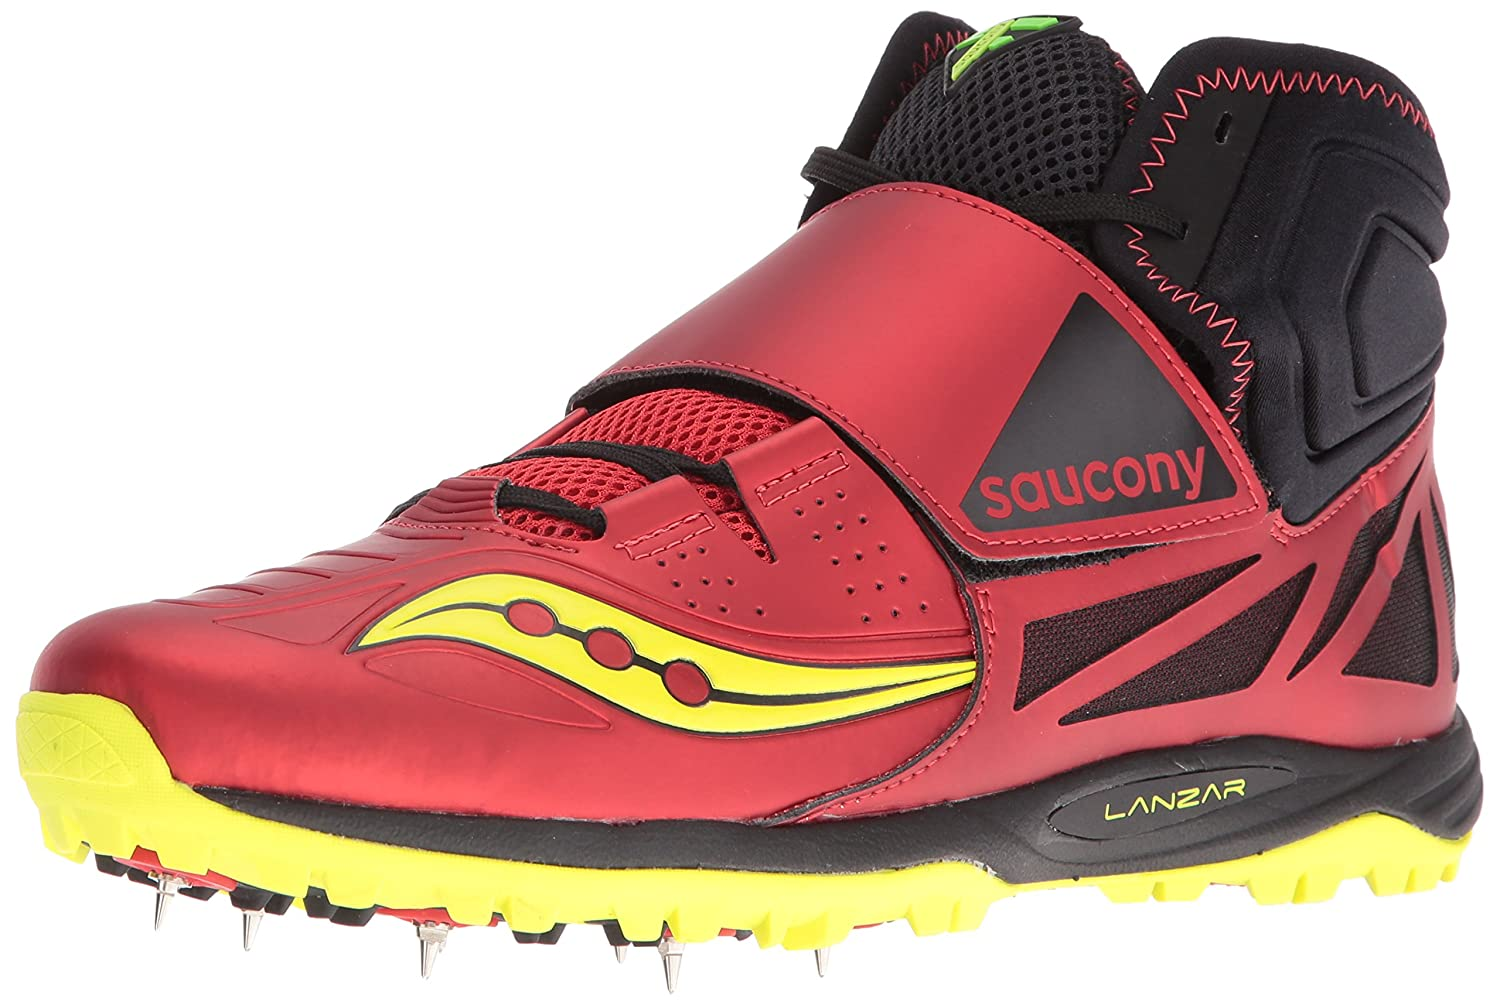 Saucony Men's Lanzar Jav2 Track and Field Shoe B01DAYGRH2 7.5 D(M) US|Red/Citron